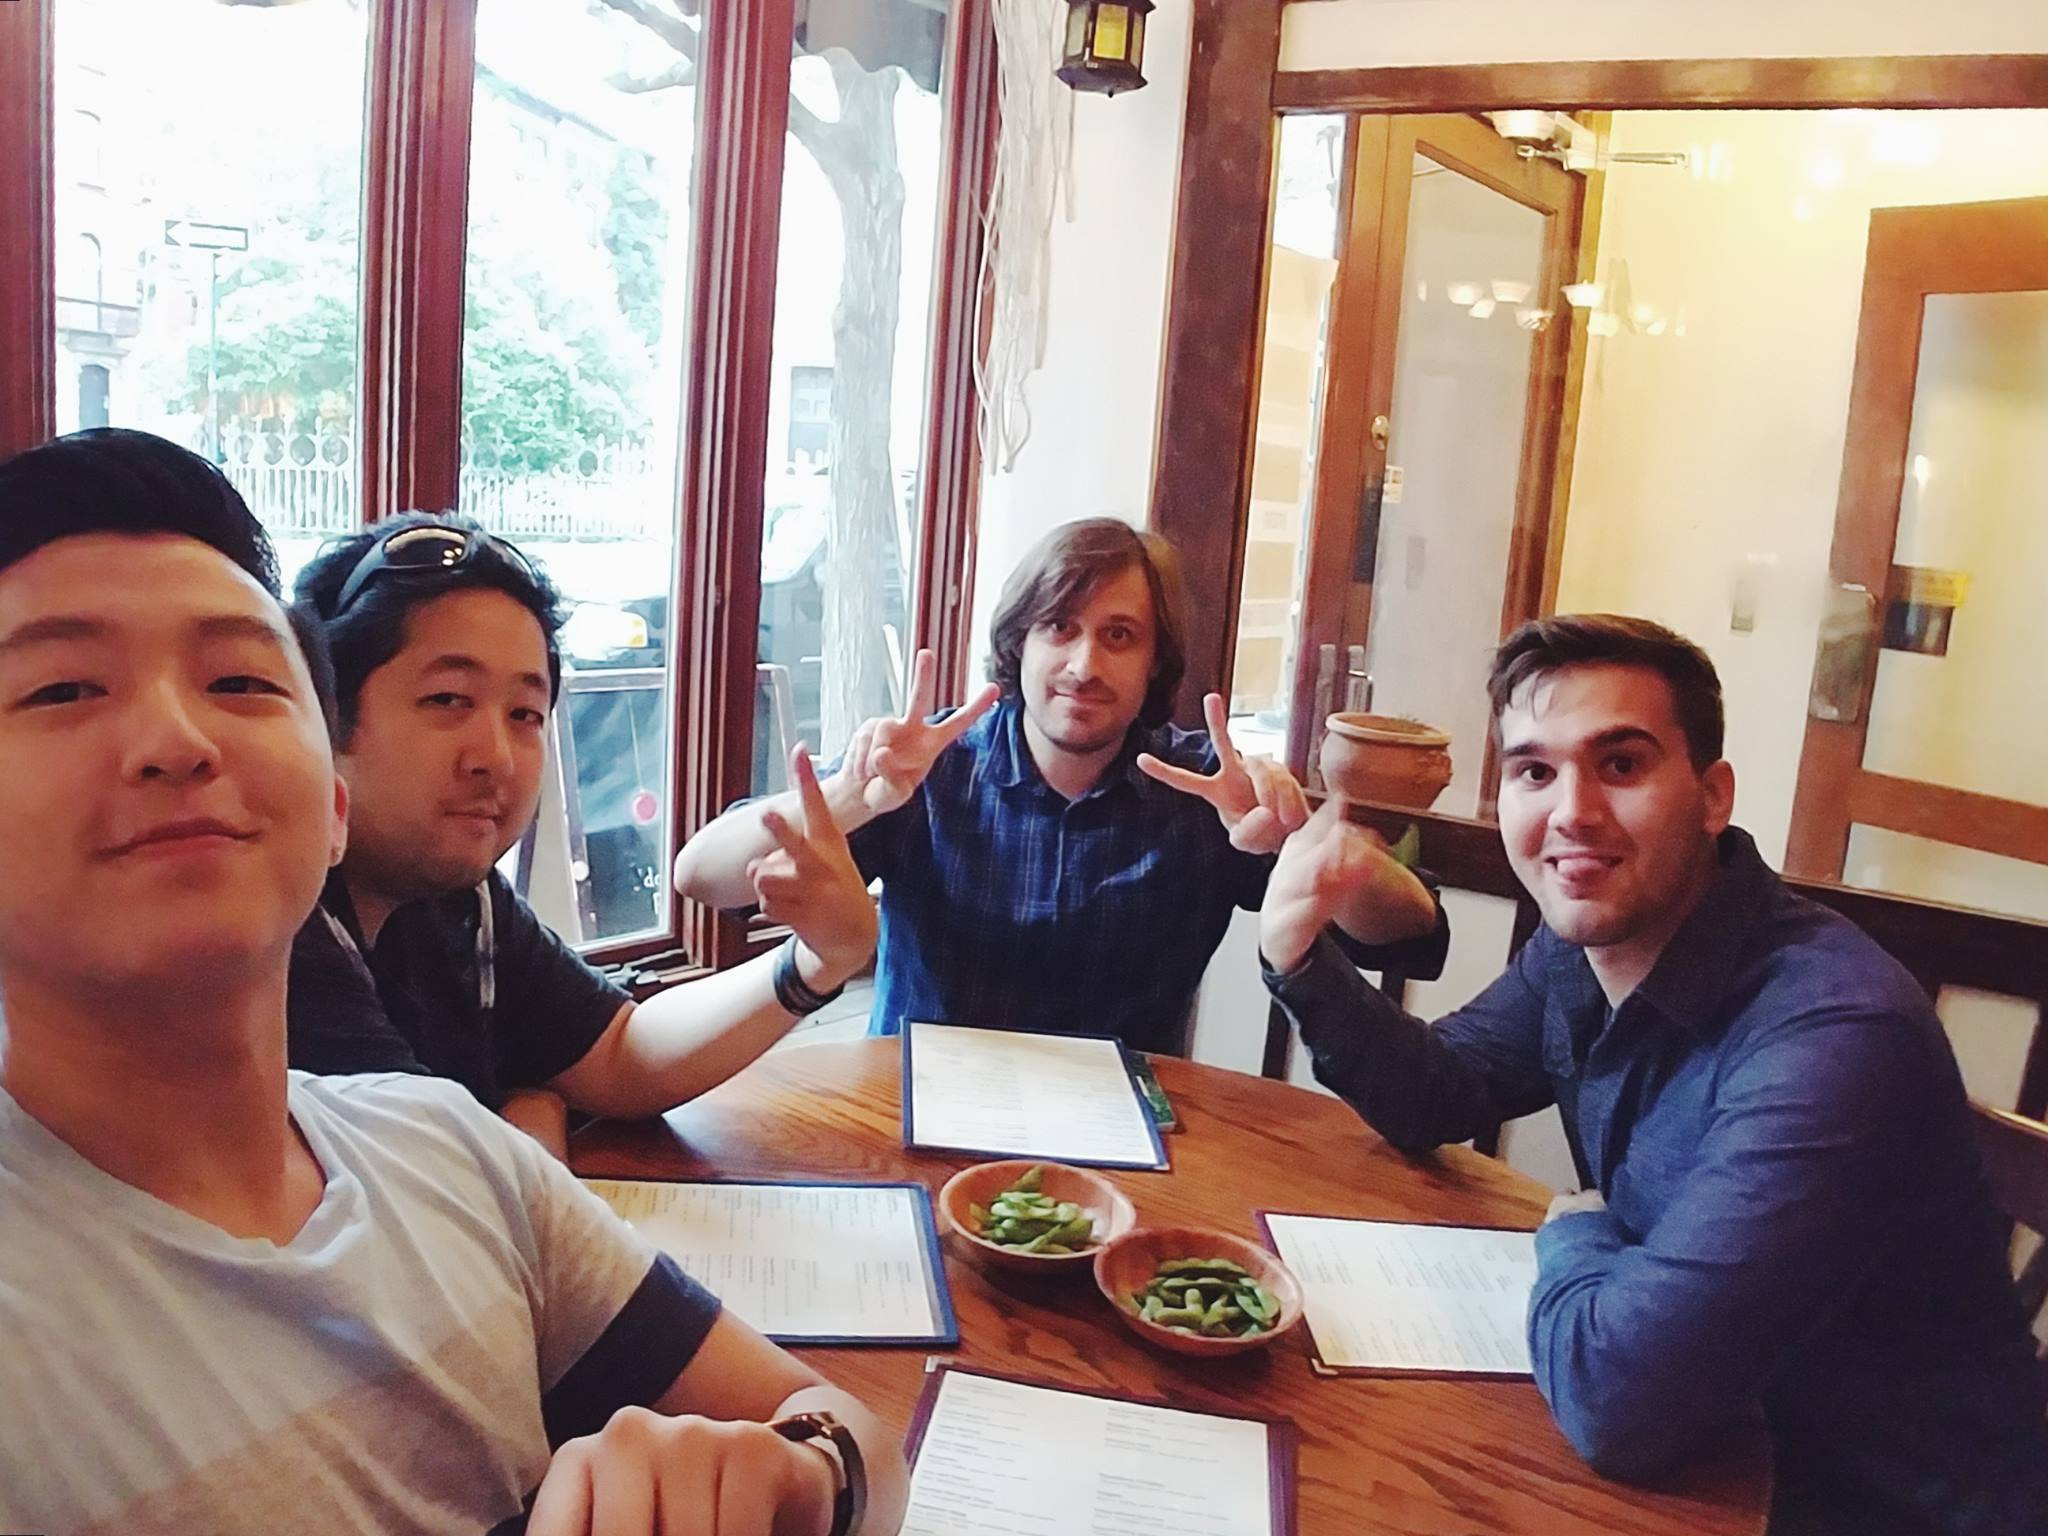 The HumanBeatbox team grabbing dinner with our friend and founder of Beatbox Television